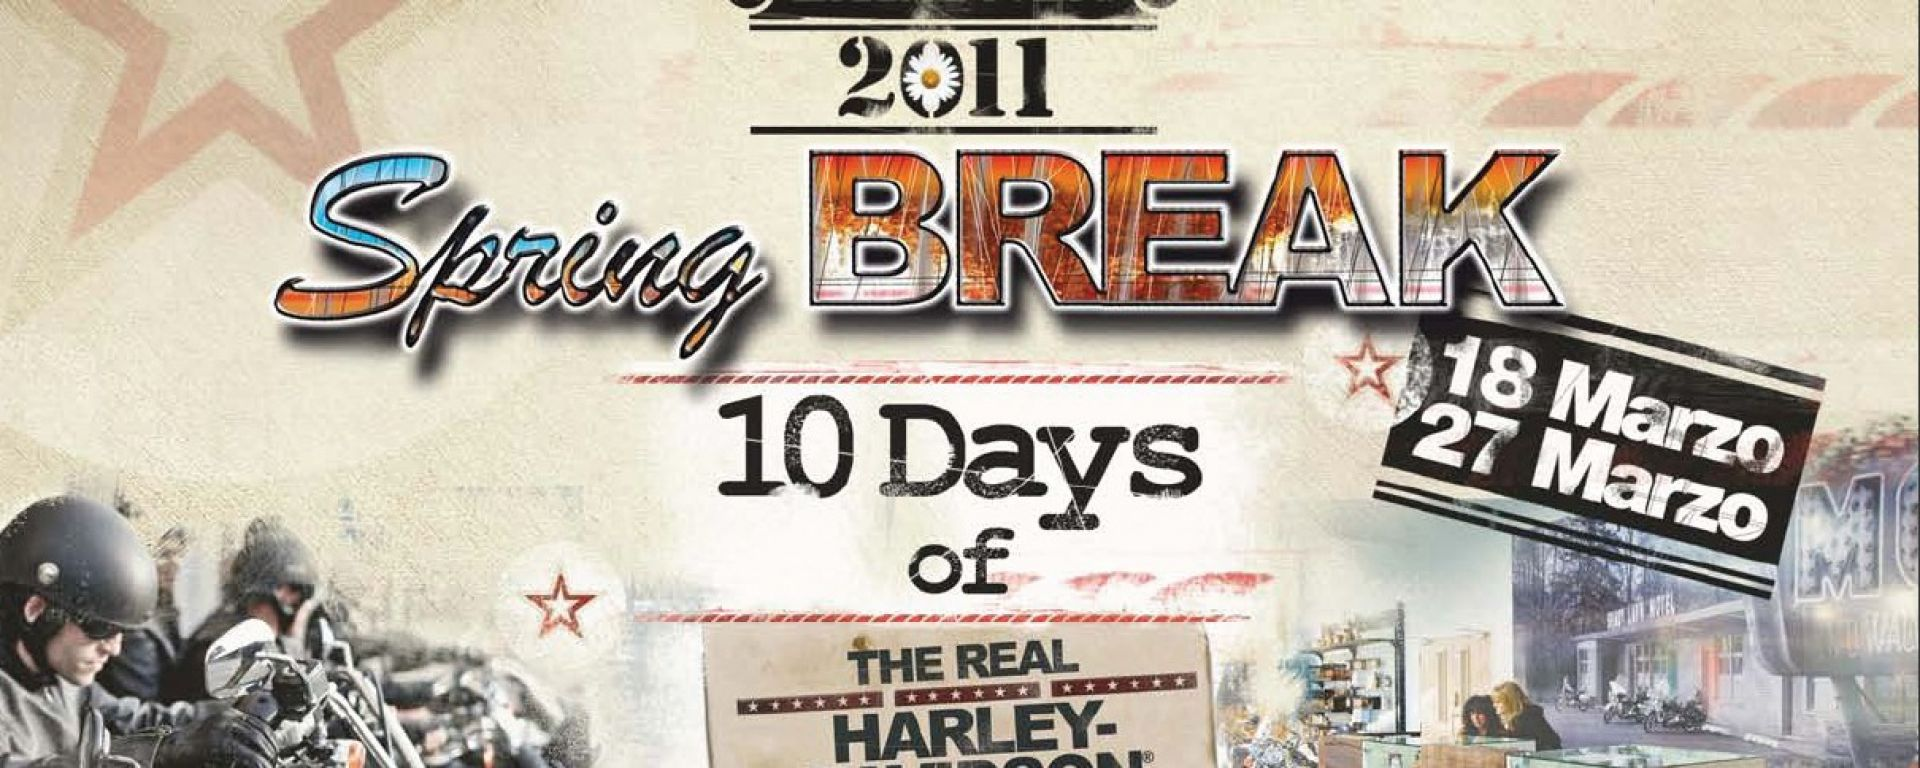 Harley-Davidson: Spring Break 2011